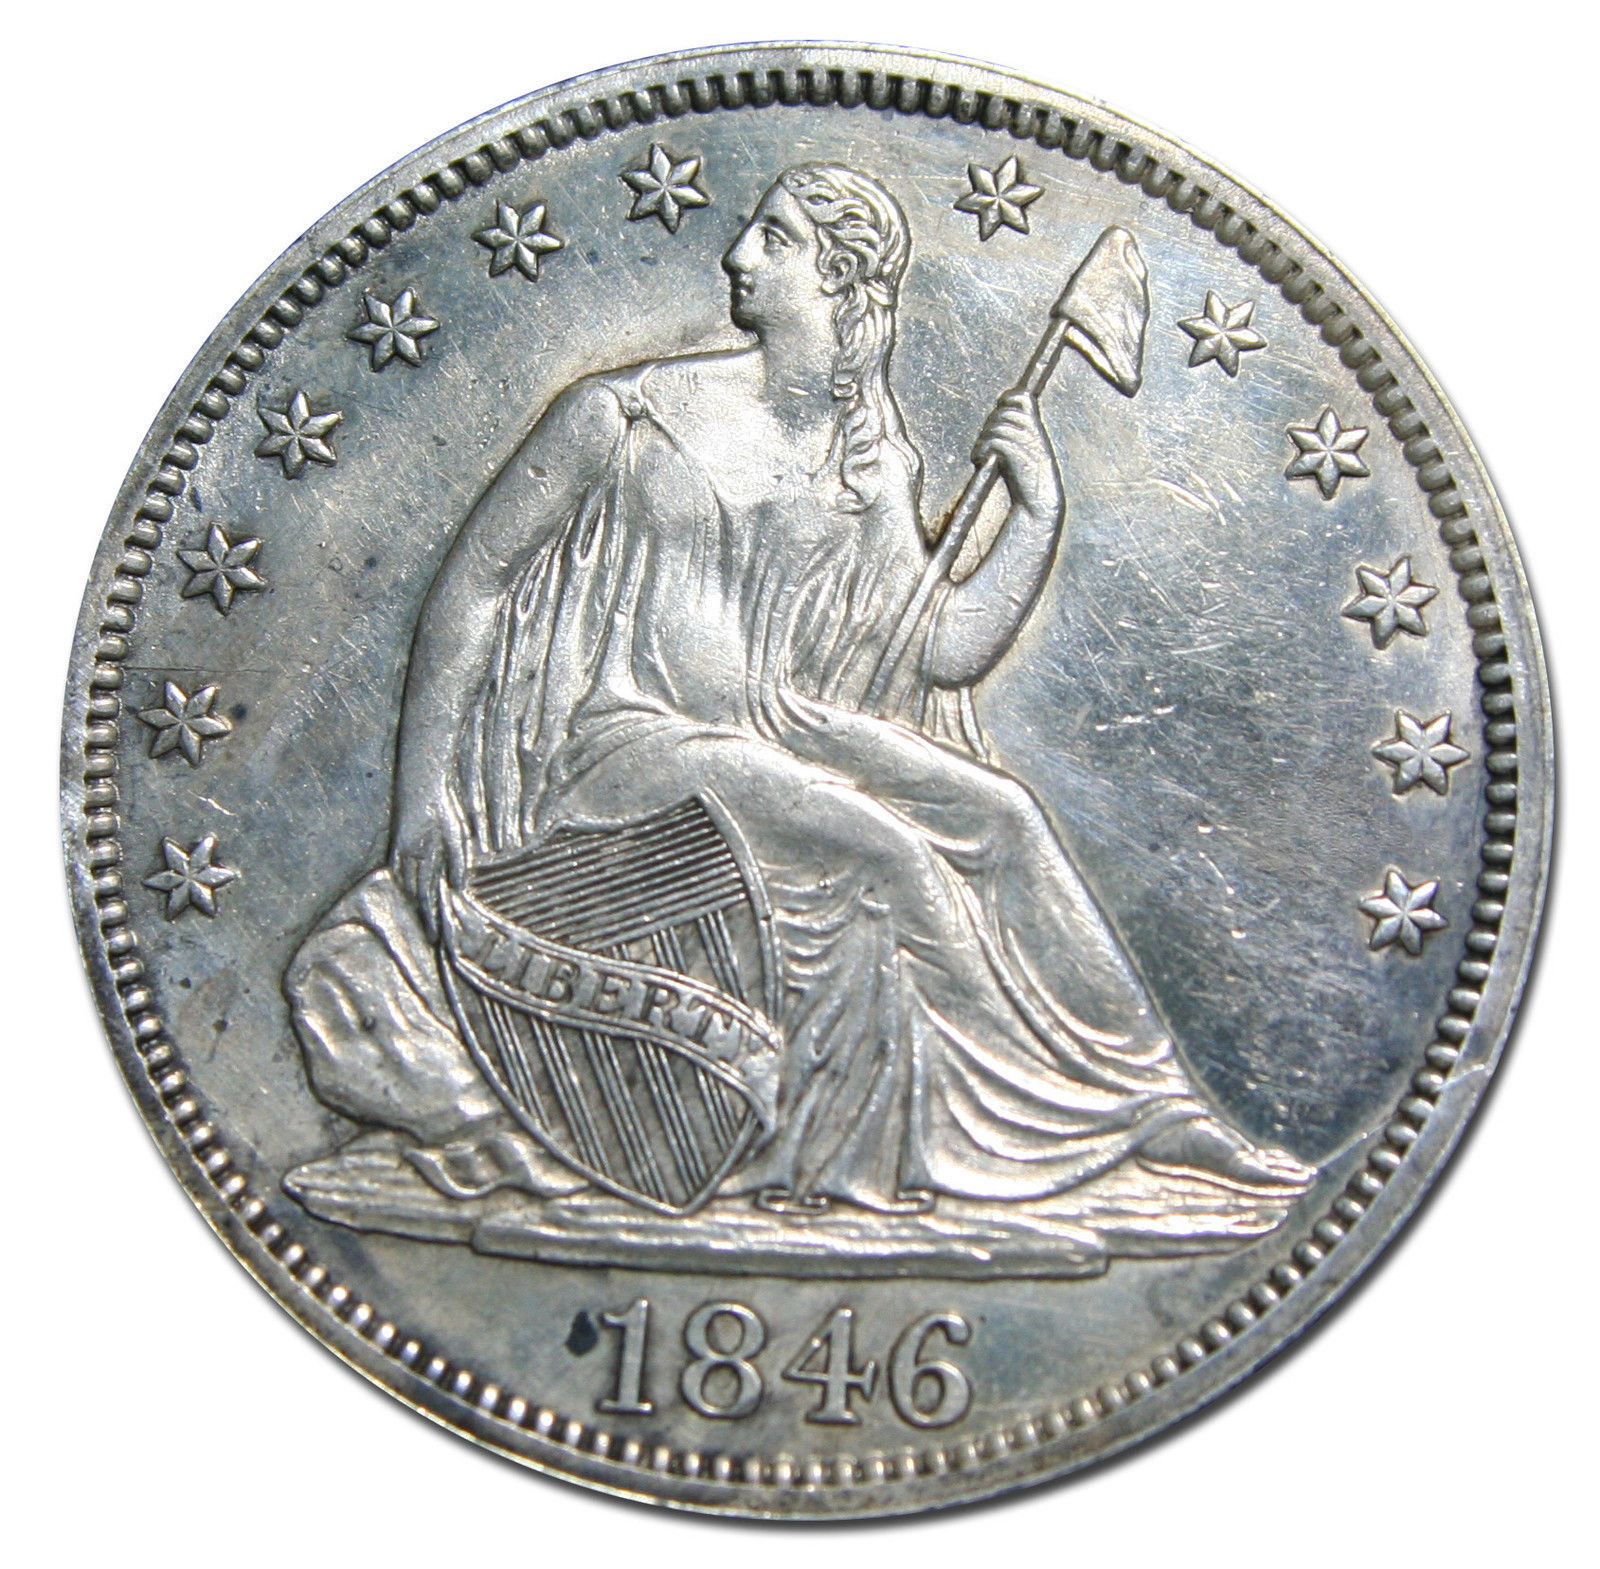 1846 Tall Date Seated Silver Liberty Half Dollar 50¢ Coin Lot# MZ 2941